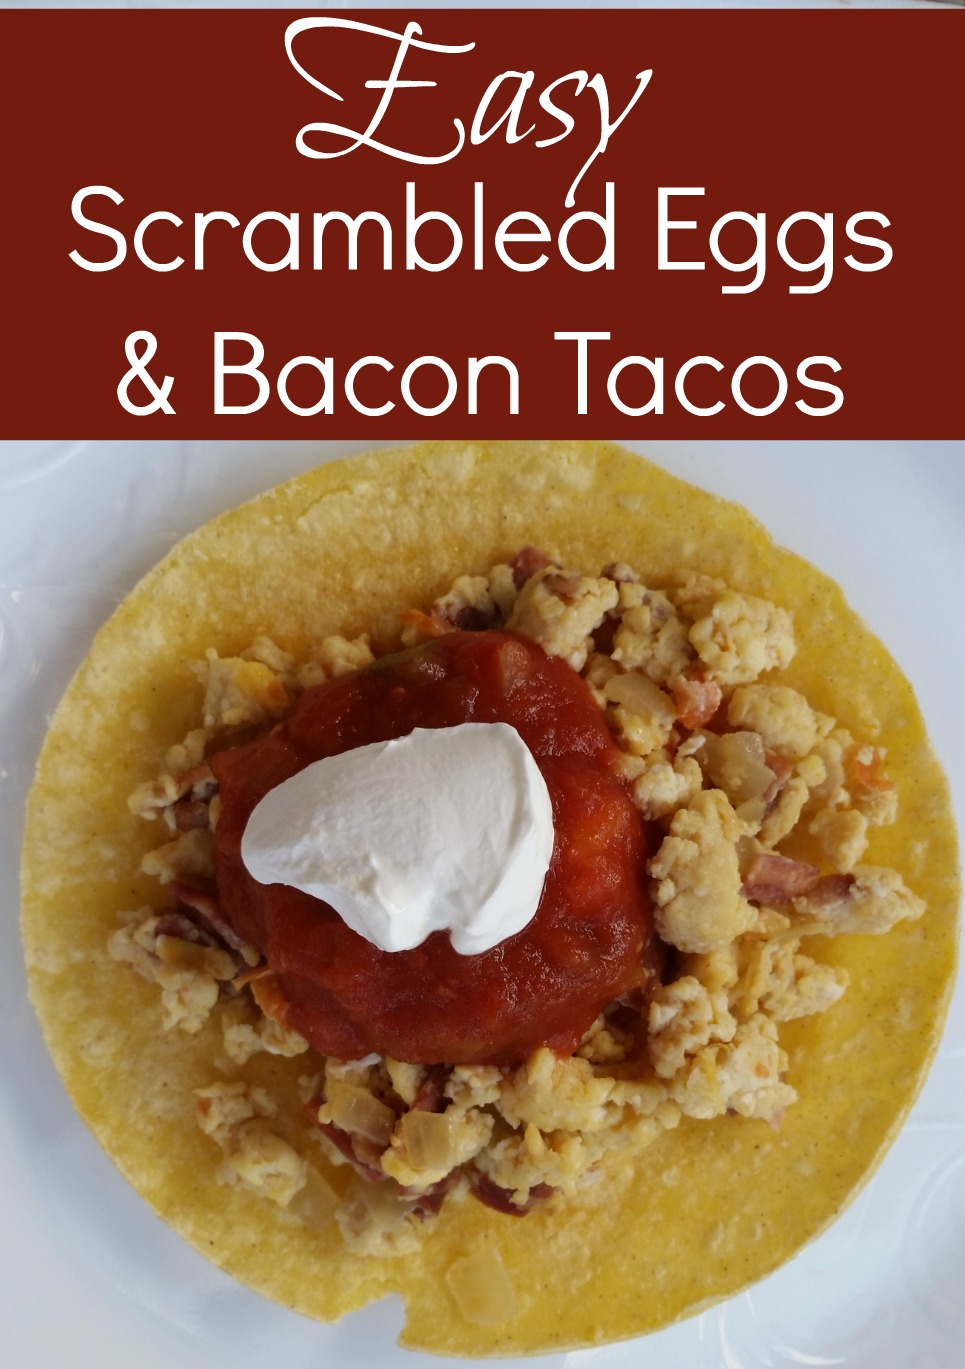 Breakfast tacos made with crispy bacon, scrambled eggs, tomatoes and salsa are the perfect lunch or early dinner option. Enjoy this Easy Scrambled Eggs and Bacon Tacos Recipe that everyone would love. FIind the recipe at CleverlyMe.com